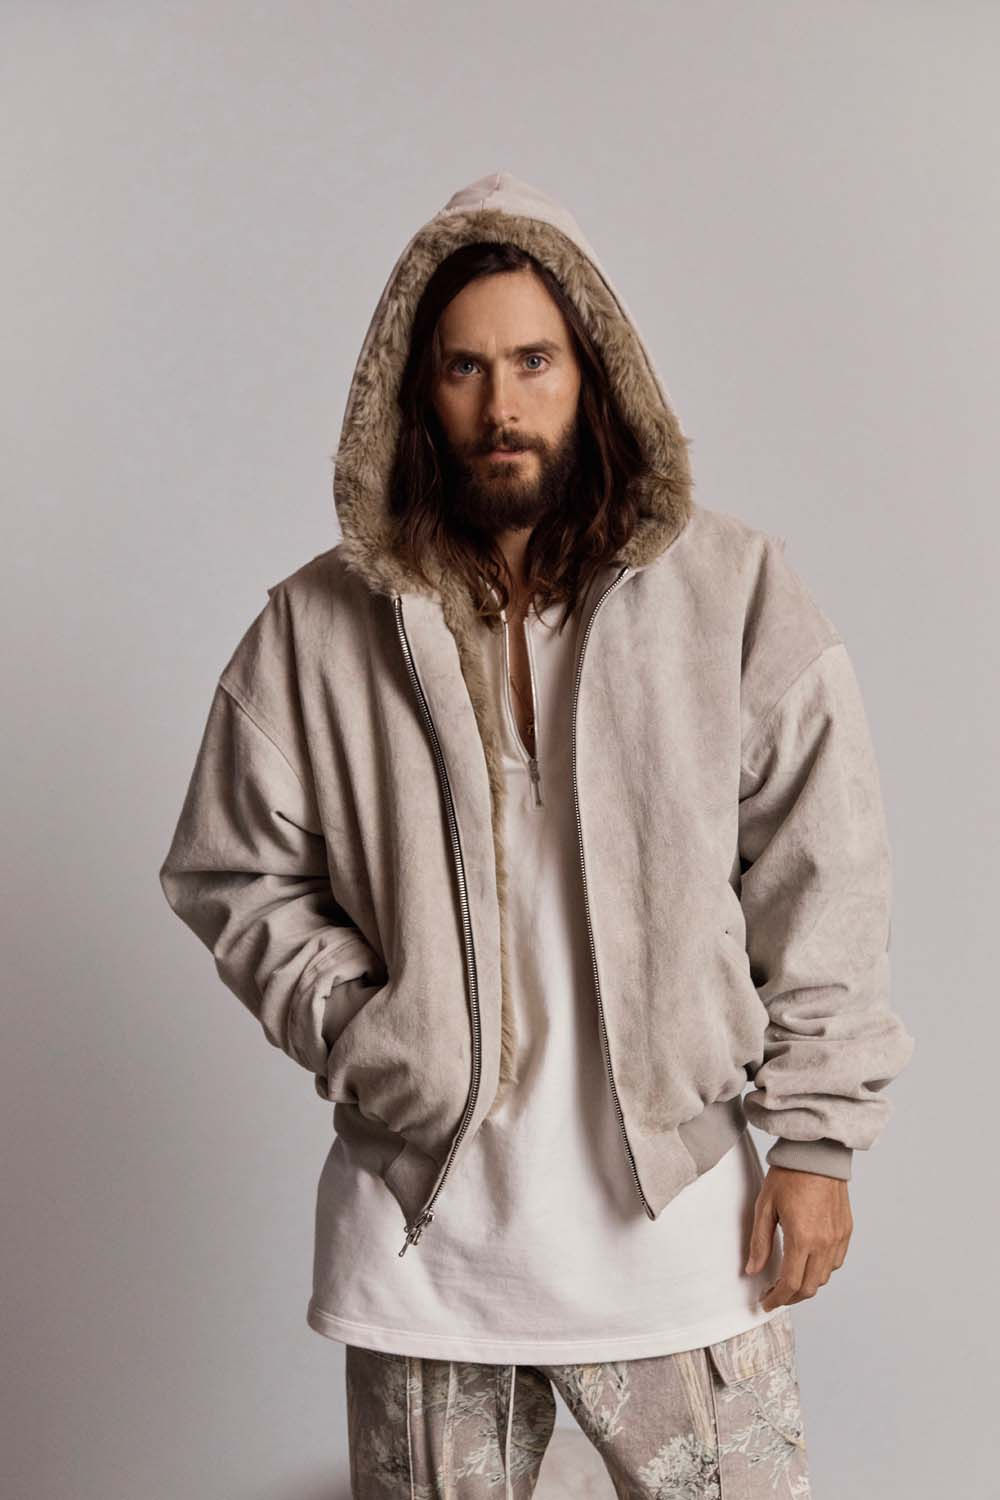 https_%2F%2Fhypebeast.com%2Fimage%2F2018%2F09%2Ffear-of-god-6-sixth-collection-jared-leto-nike-50.jpg